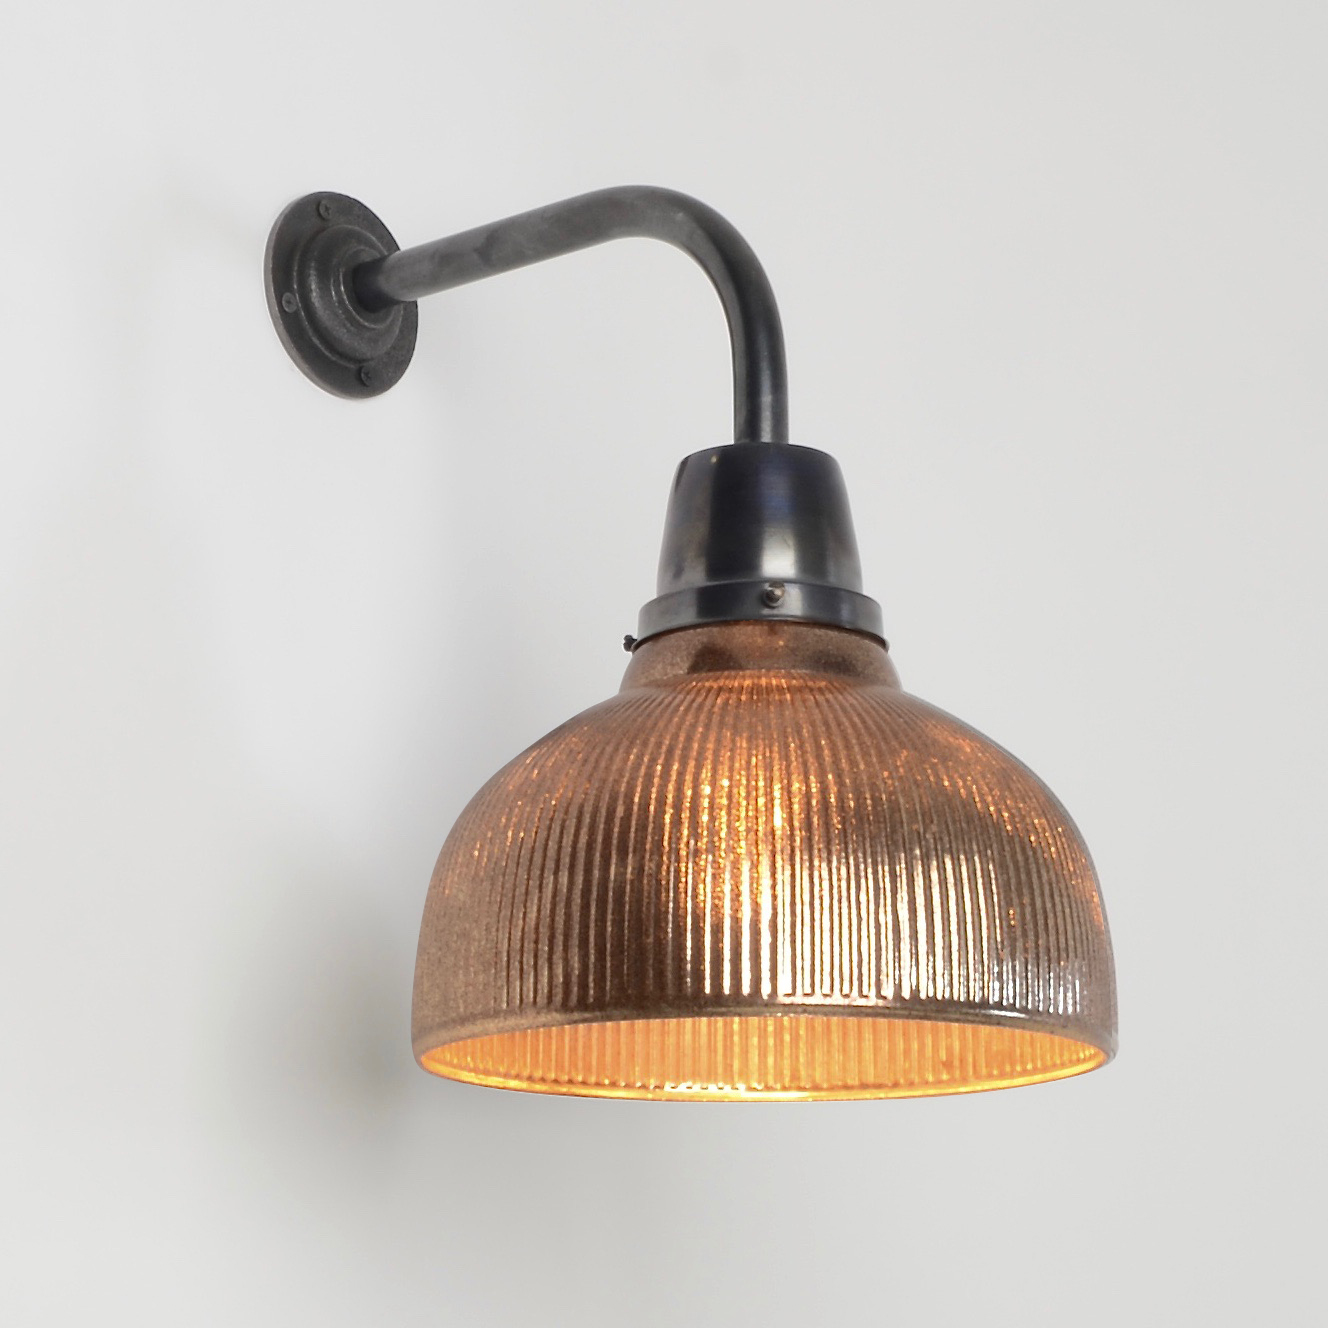 Industrial Vintage Lighting Vintage Industrial Wall Lights Add Security To Your